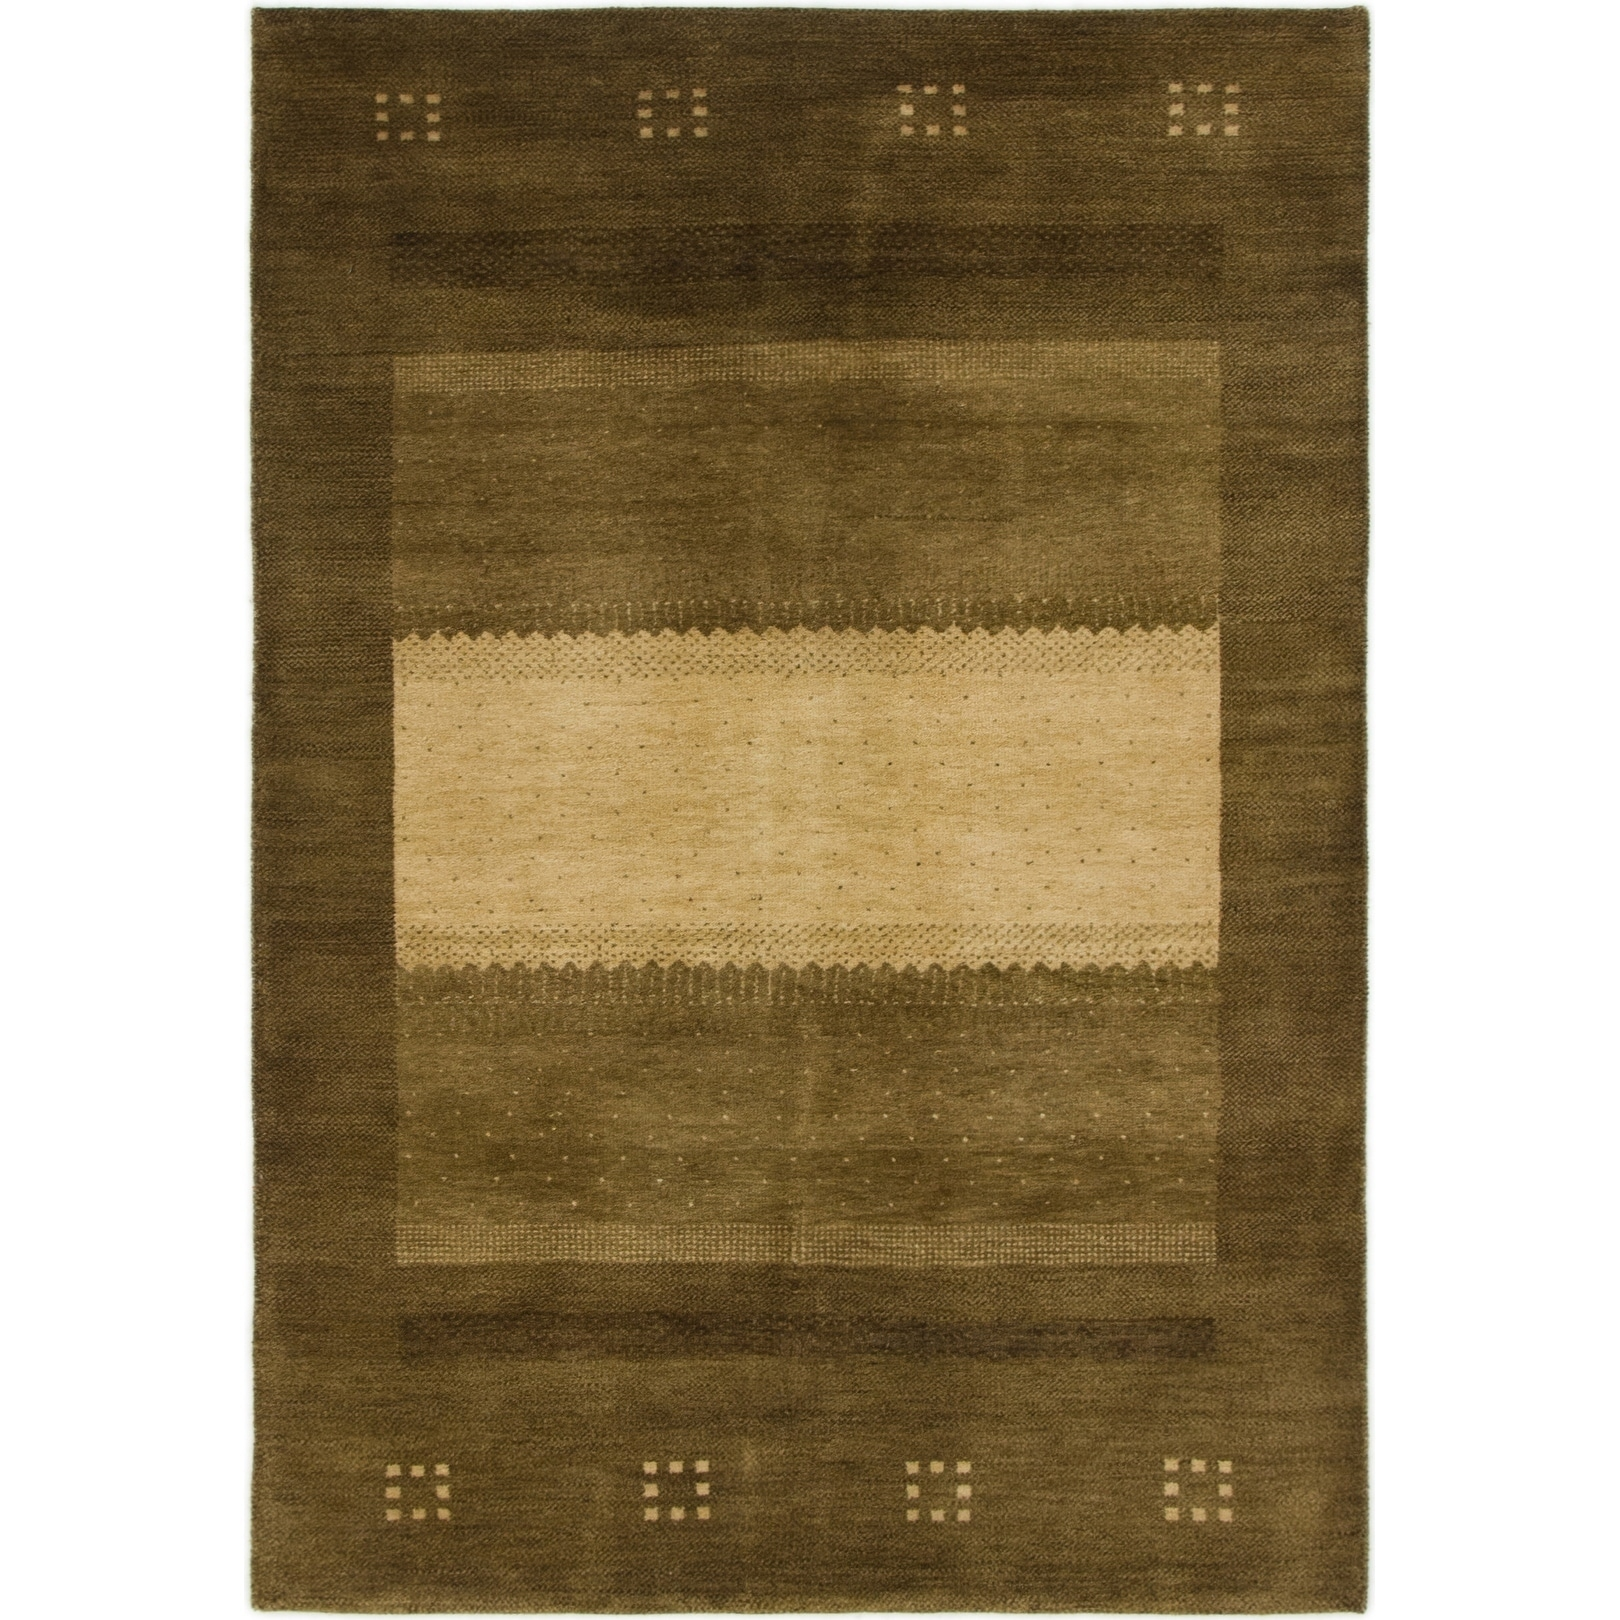 Hand Knotted Kashkuli Gabbeh Wool Area Rug - 4 1 x 6 (Brown - 4 1 x 6)